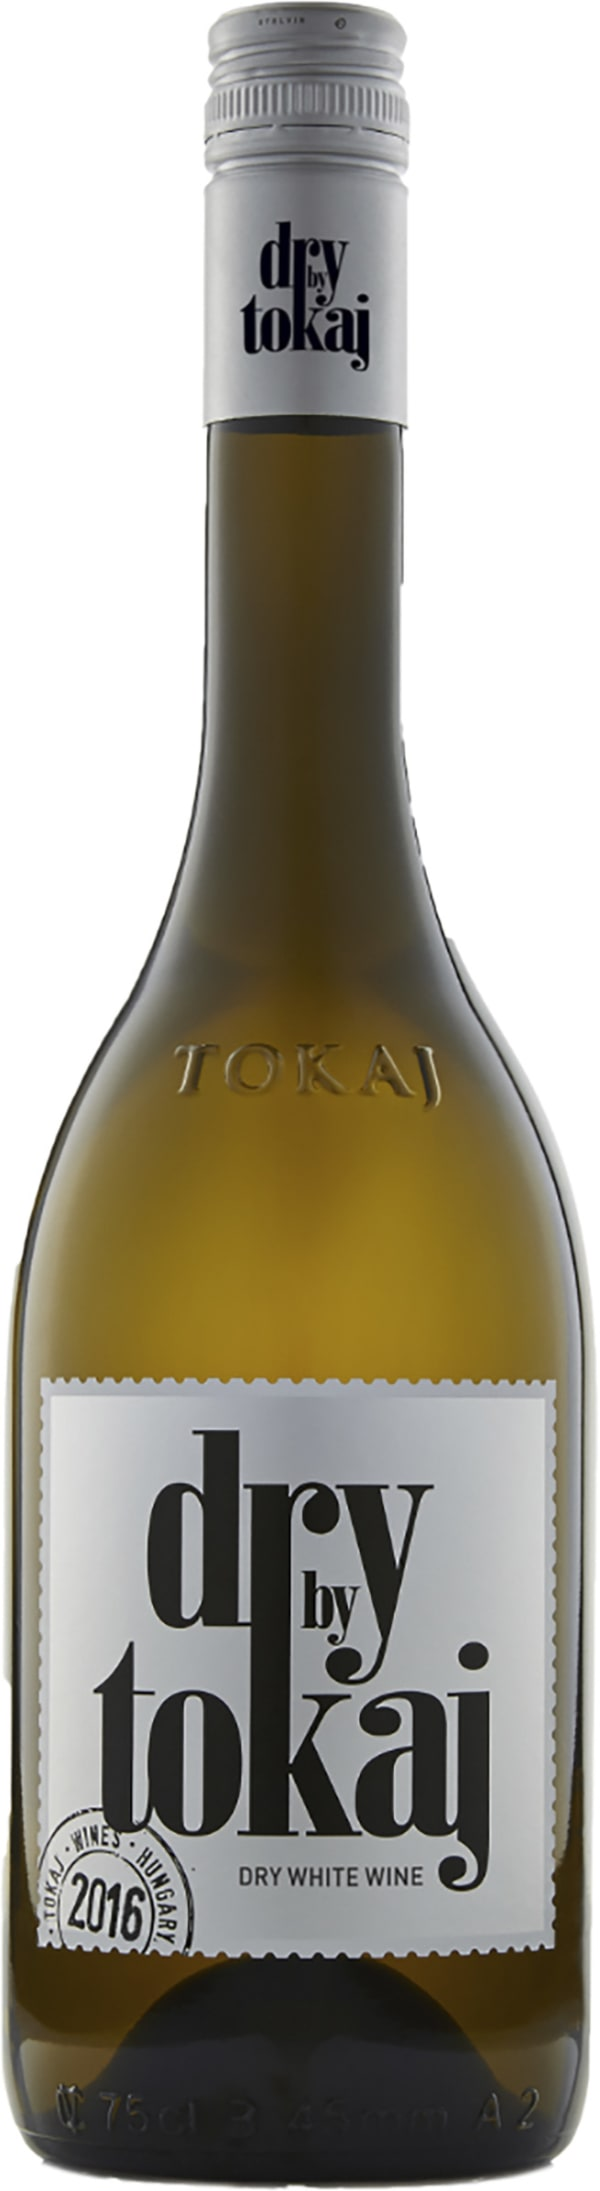 Mad Dry by Tokaj 2017